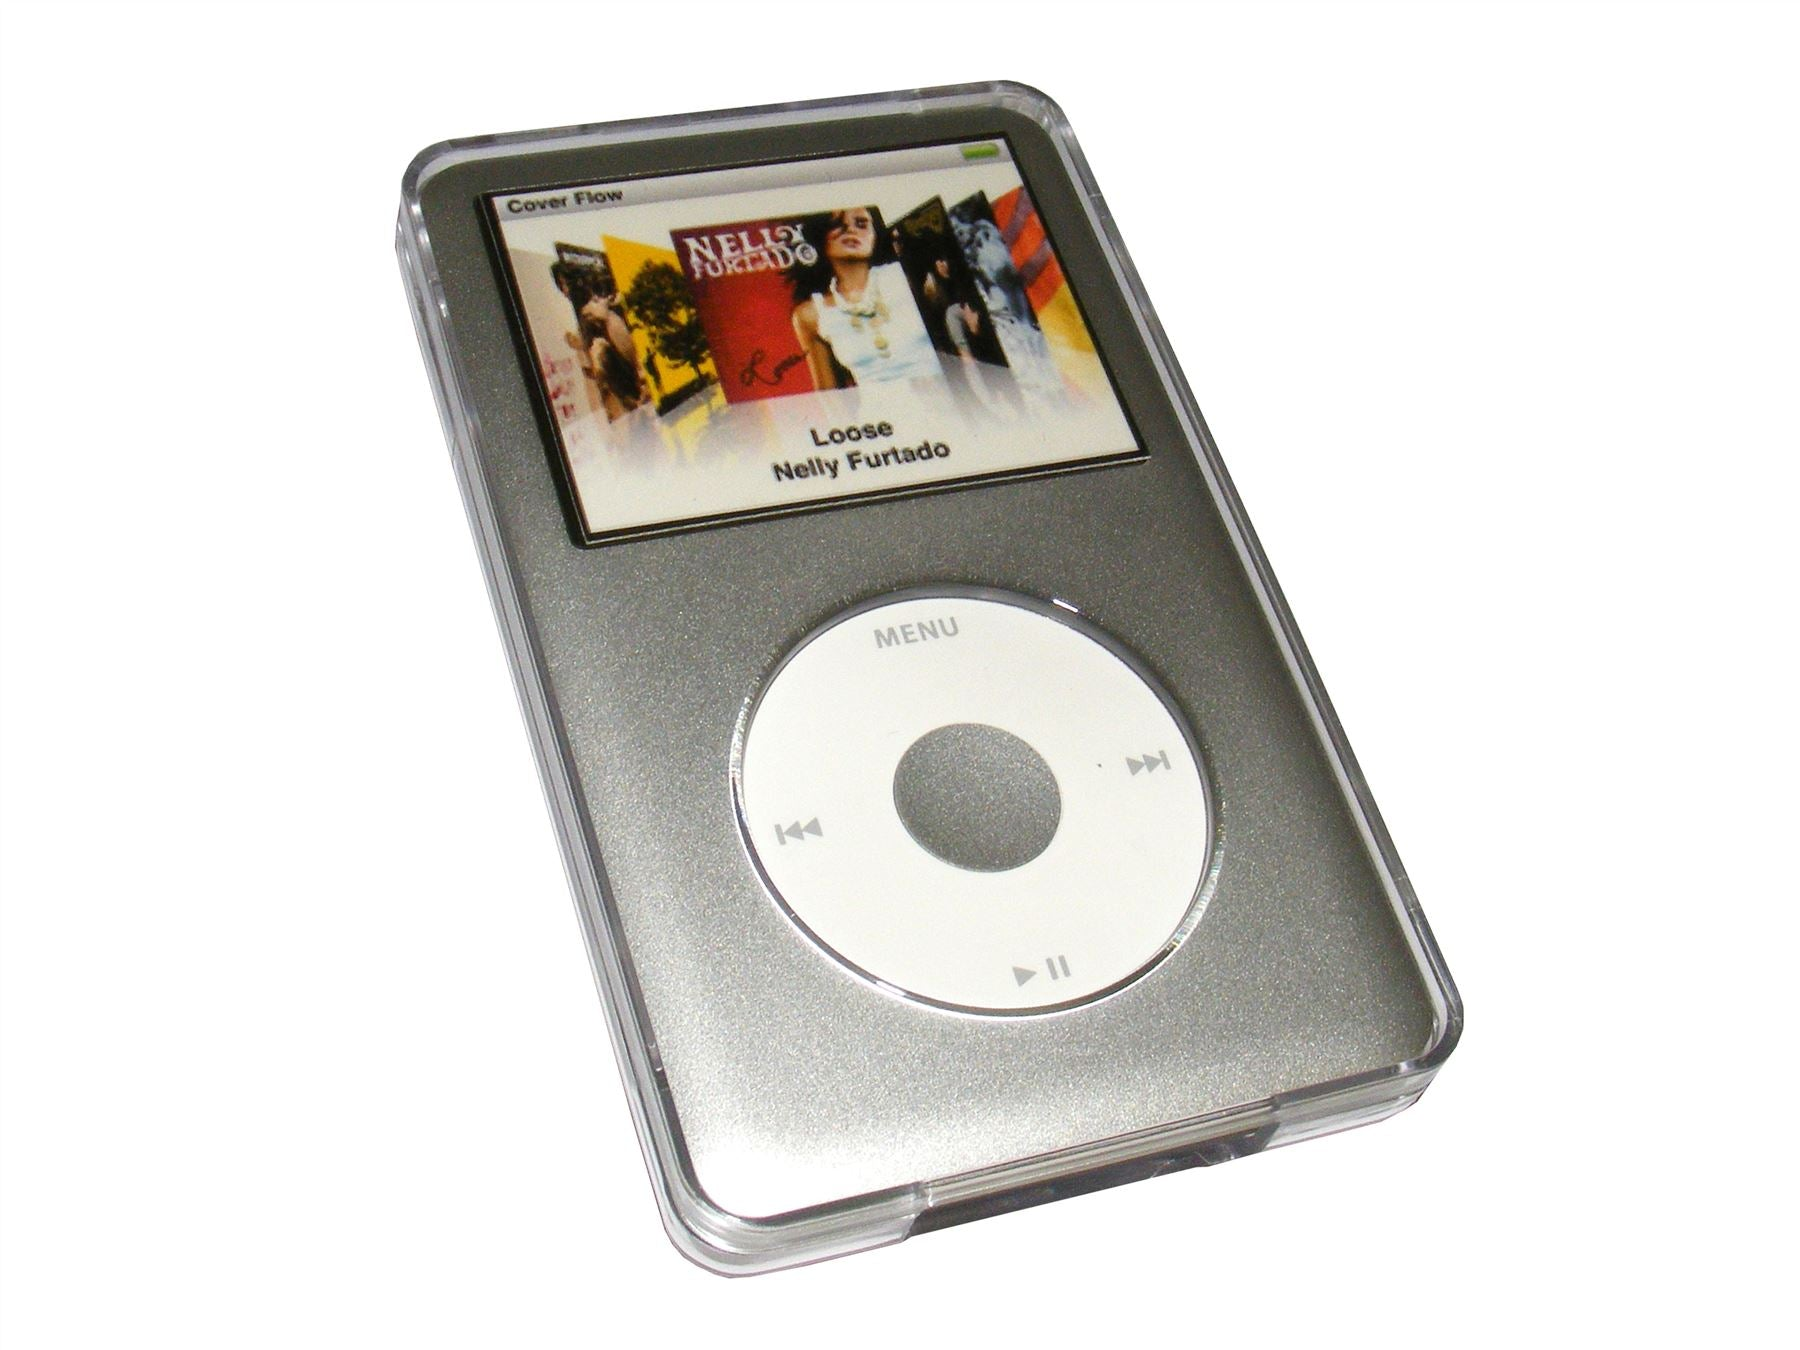 iGadgitz Crystal Hard Case Cover for Apple iPod Classic 80GB, 120GB & latest 160GB launched Sept 09 + Belt Clip